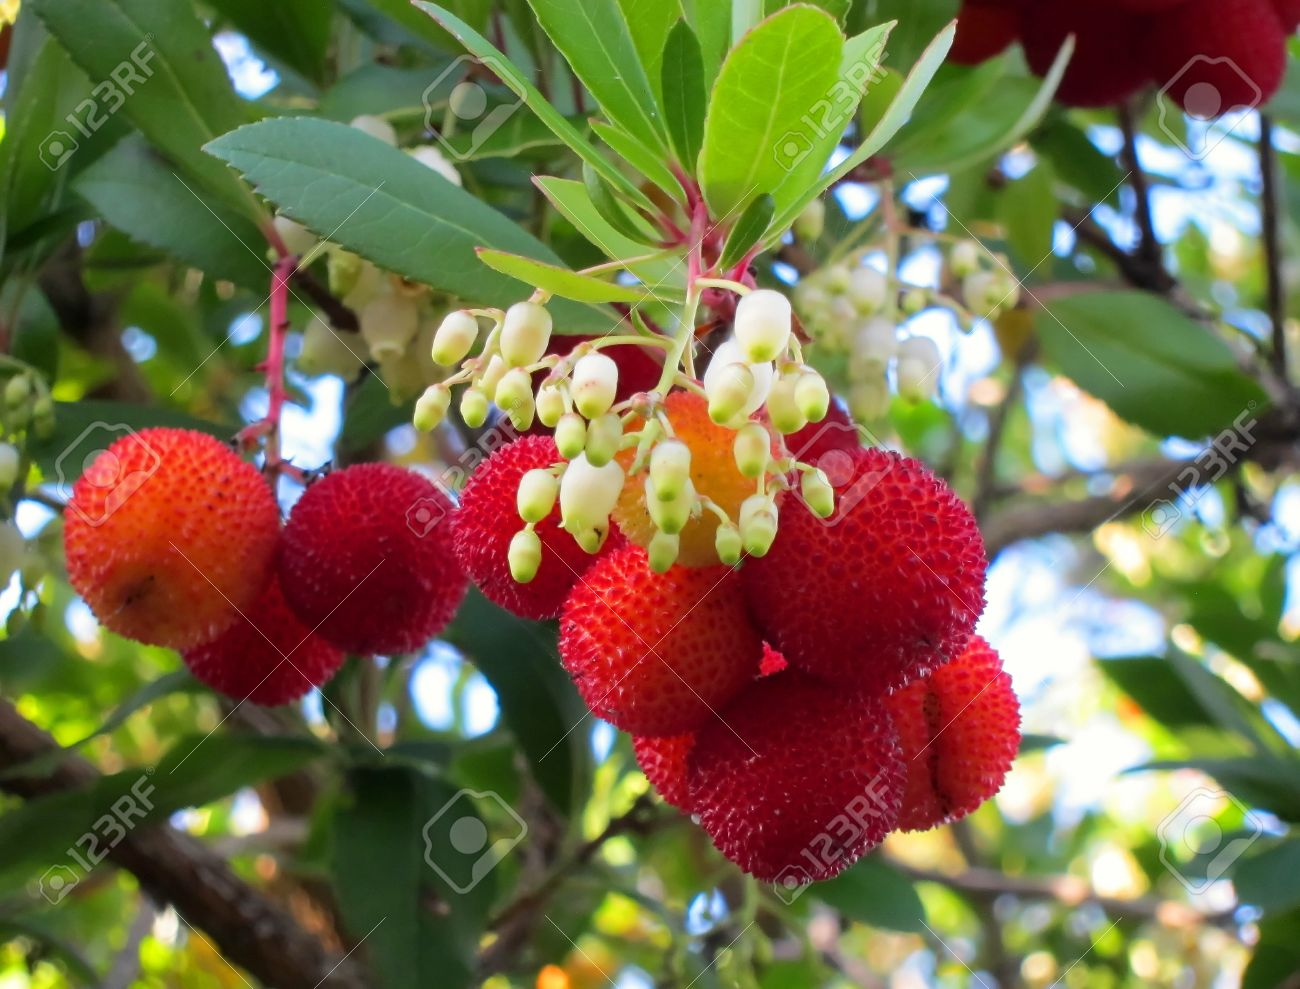 Fruit Tree Flowers Part - 24: Here Is The Red Fruit And Small White Bell Shaped Flowers Of The Kousa  Dogwood Tree